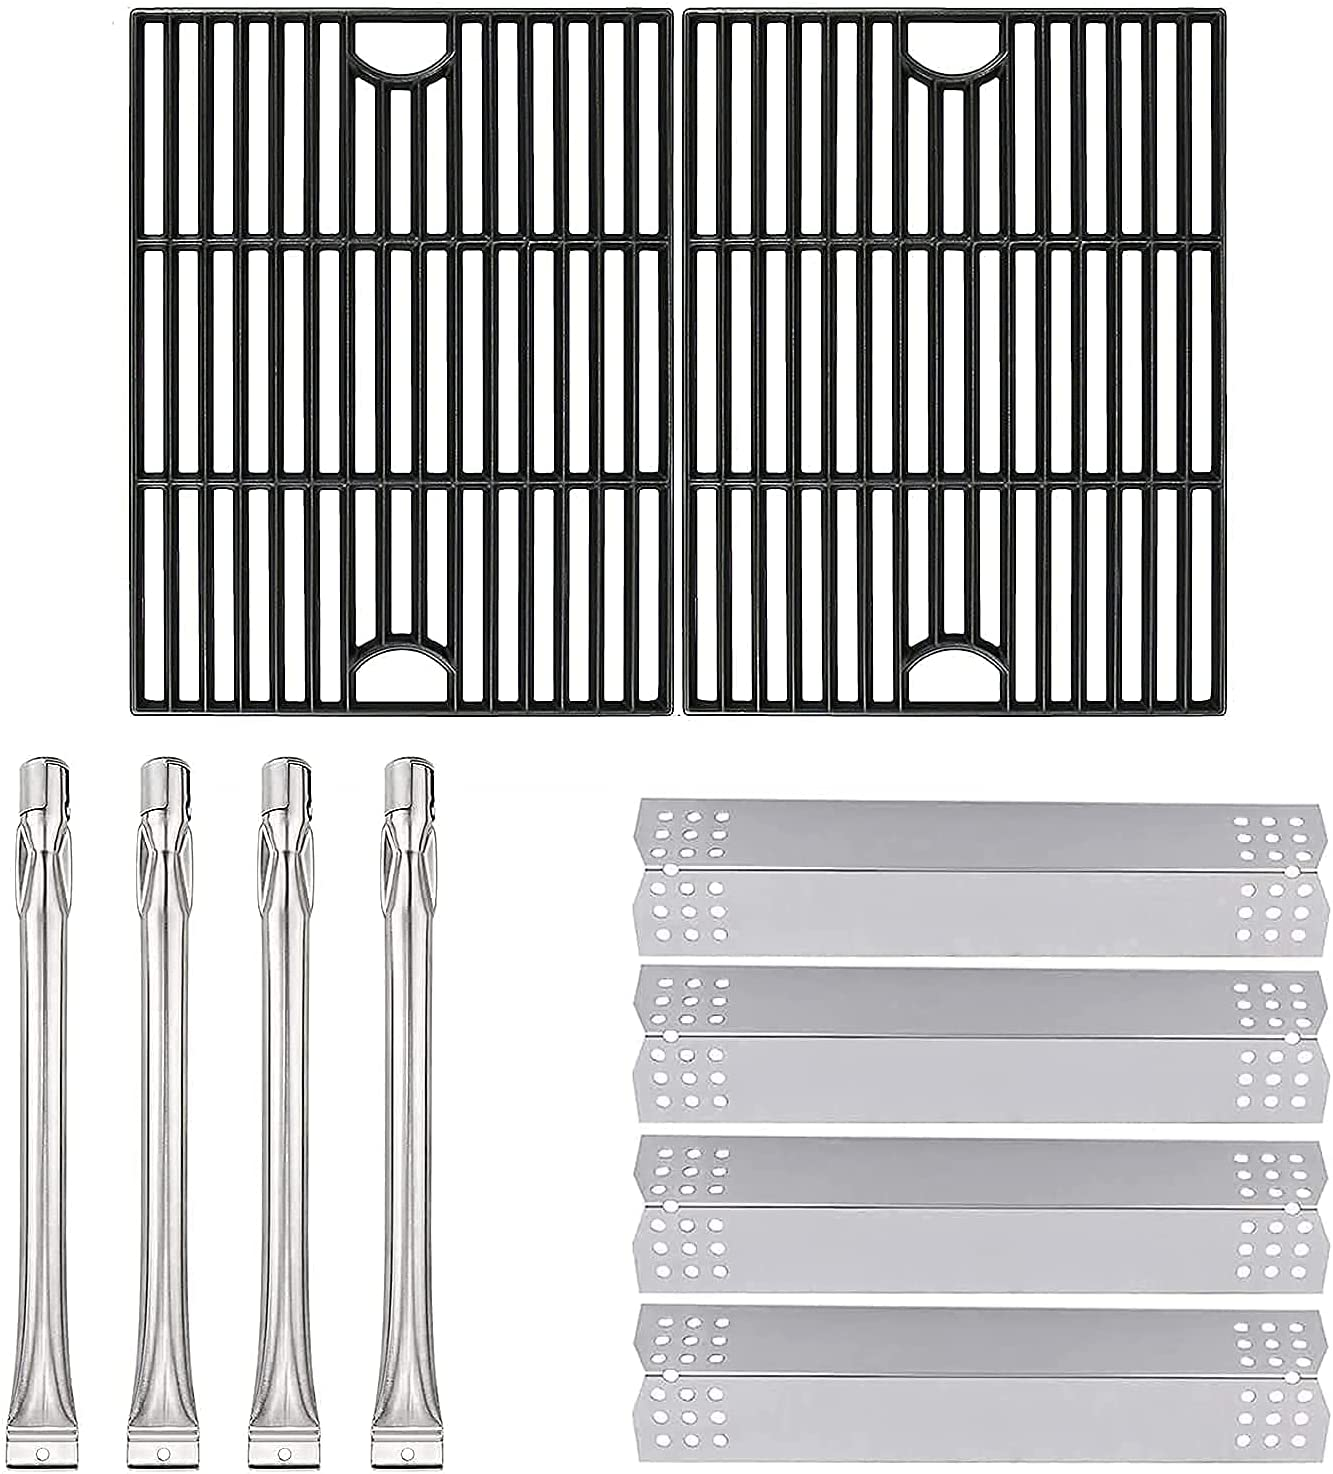 Hisencn Super sale period limited Repair Limited time trial price Kit Replacement Parts for Gas 720-0783E Nexgrill